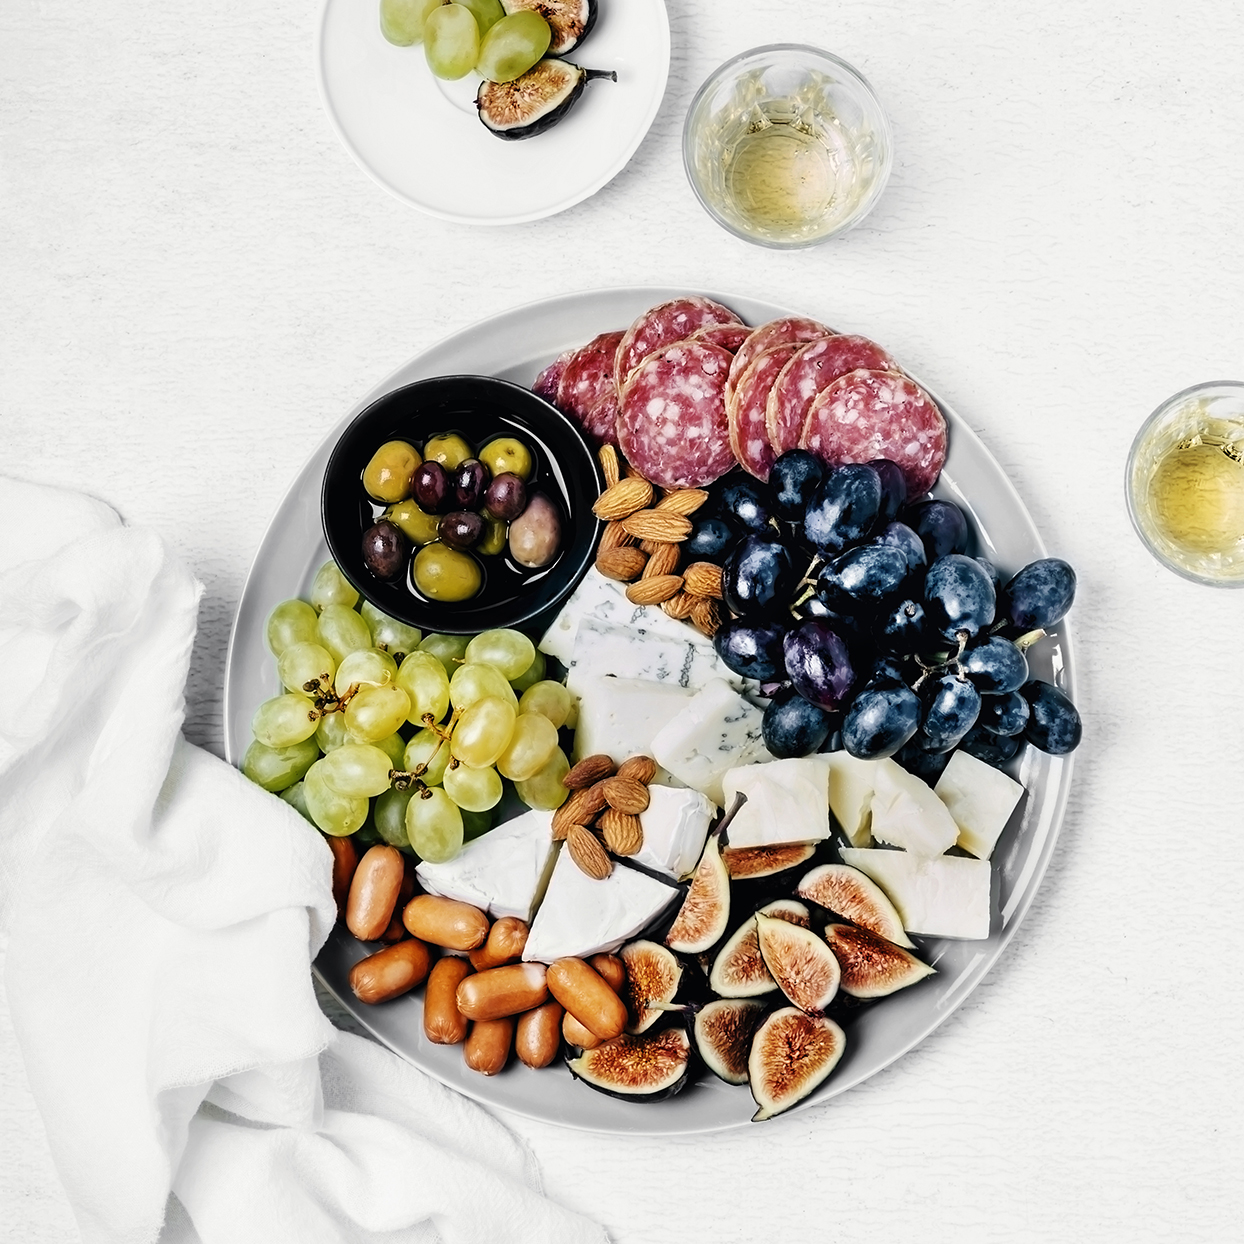 Women should aim for 1,000 milligrams of calcium a day, which is all the more reason to hang out by the cheese platter. One or two sizeable cheddar cheese chunks will give you roughly 120 milligrams, but remember that this healthy party snack can add up quickly in the fat and calorie department. Hard cheeses like cheddar yield more calcium—and more calories—than soft cheeses like brie or goat. For fruit, load up on strawberries, pineapples, or kiwis for an extra wallop of vitamin C and an immunity boost.